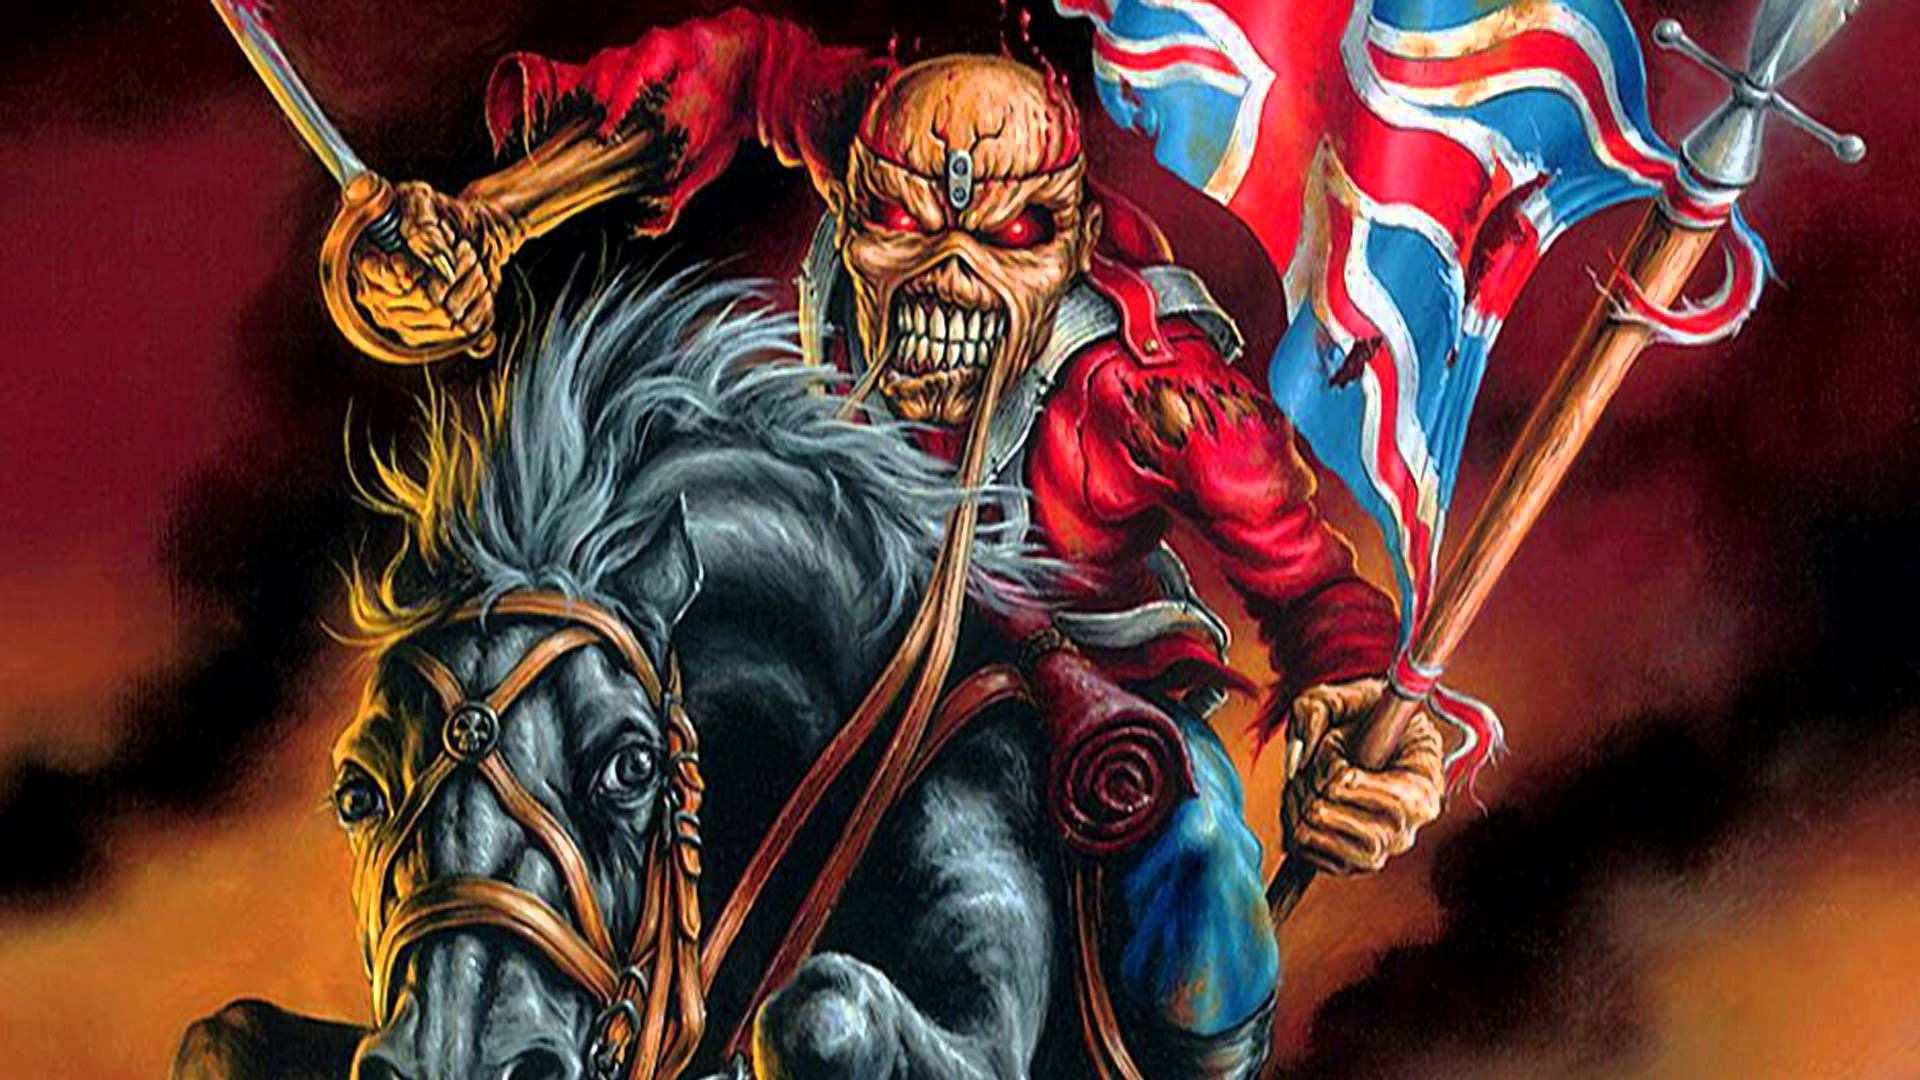 Iron Maiden Number Of The Beast Wallpapers Free Iron Maiden The Trooper Beast Wallpaper Iron Maiden